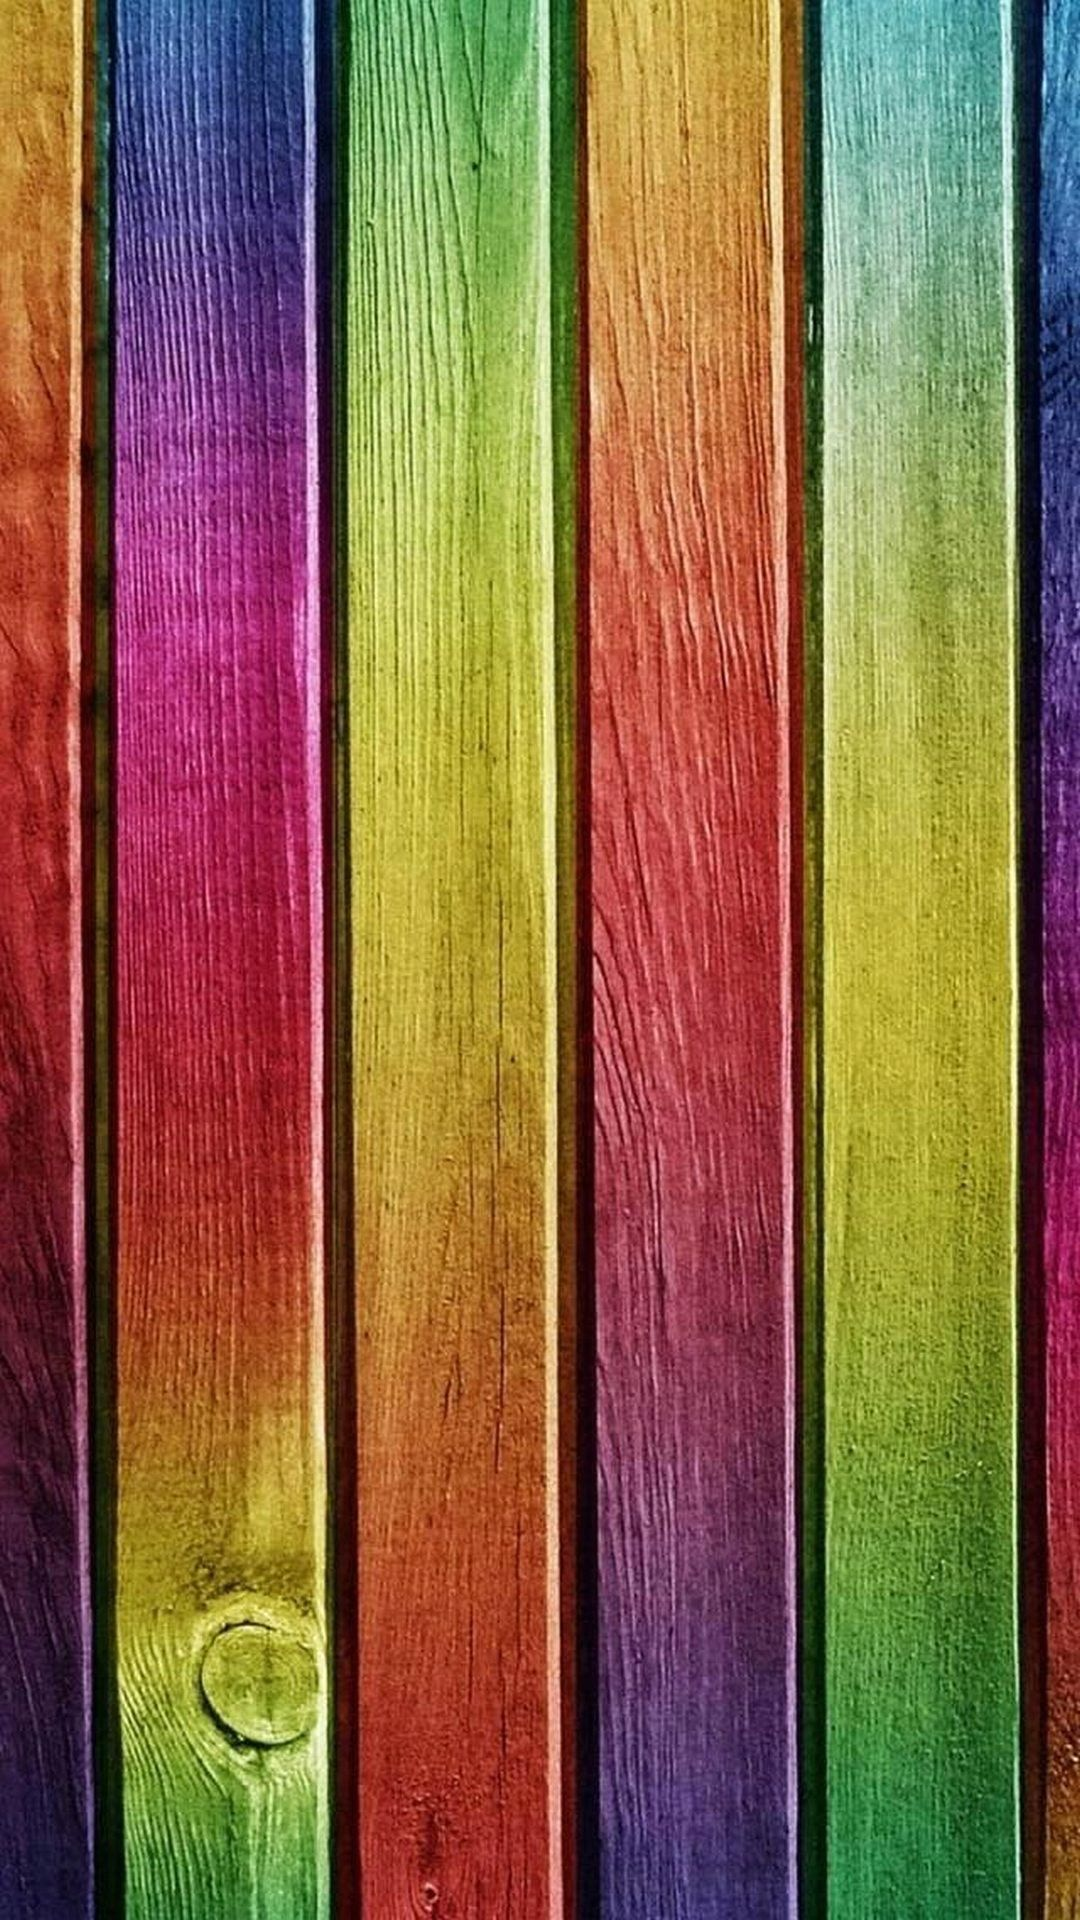 wood iPhonewalls